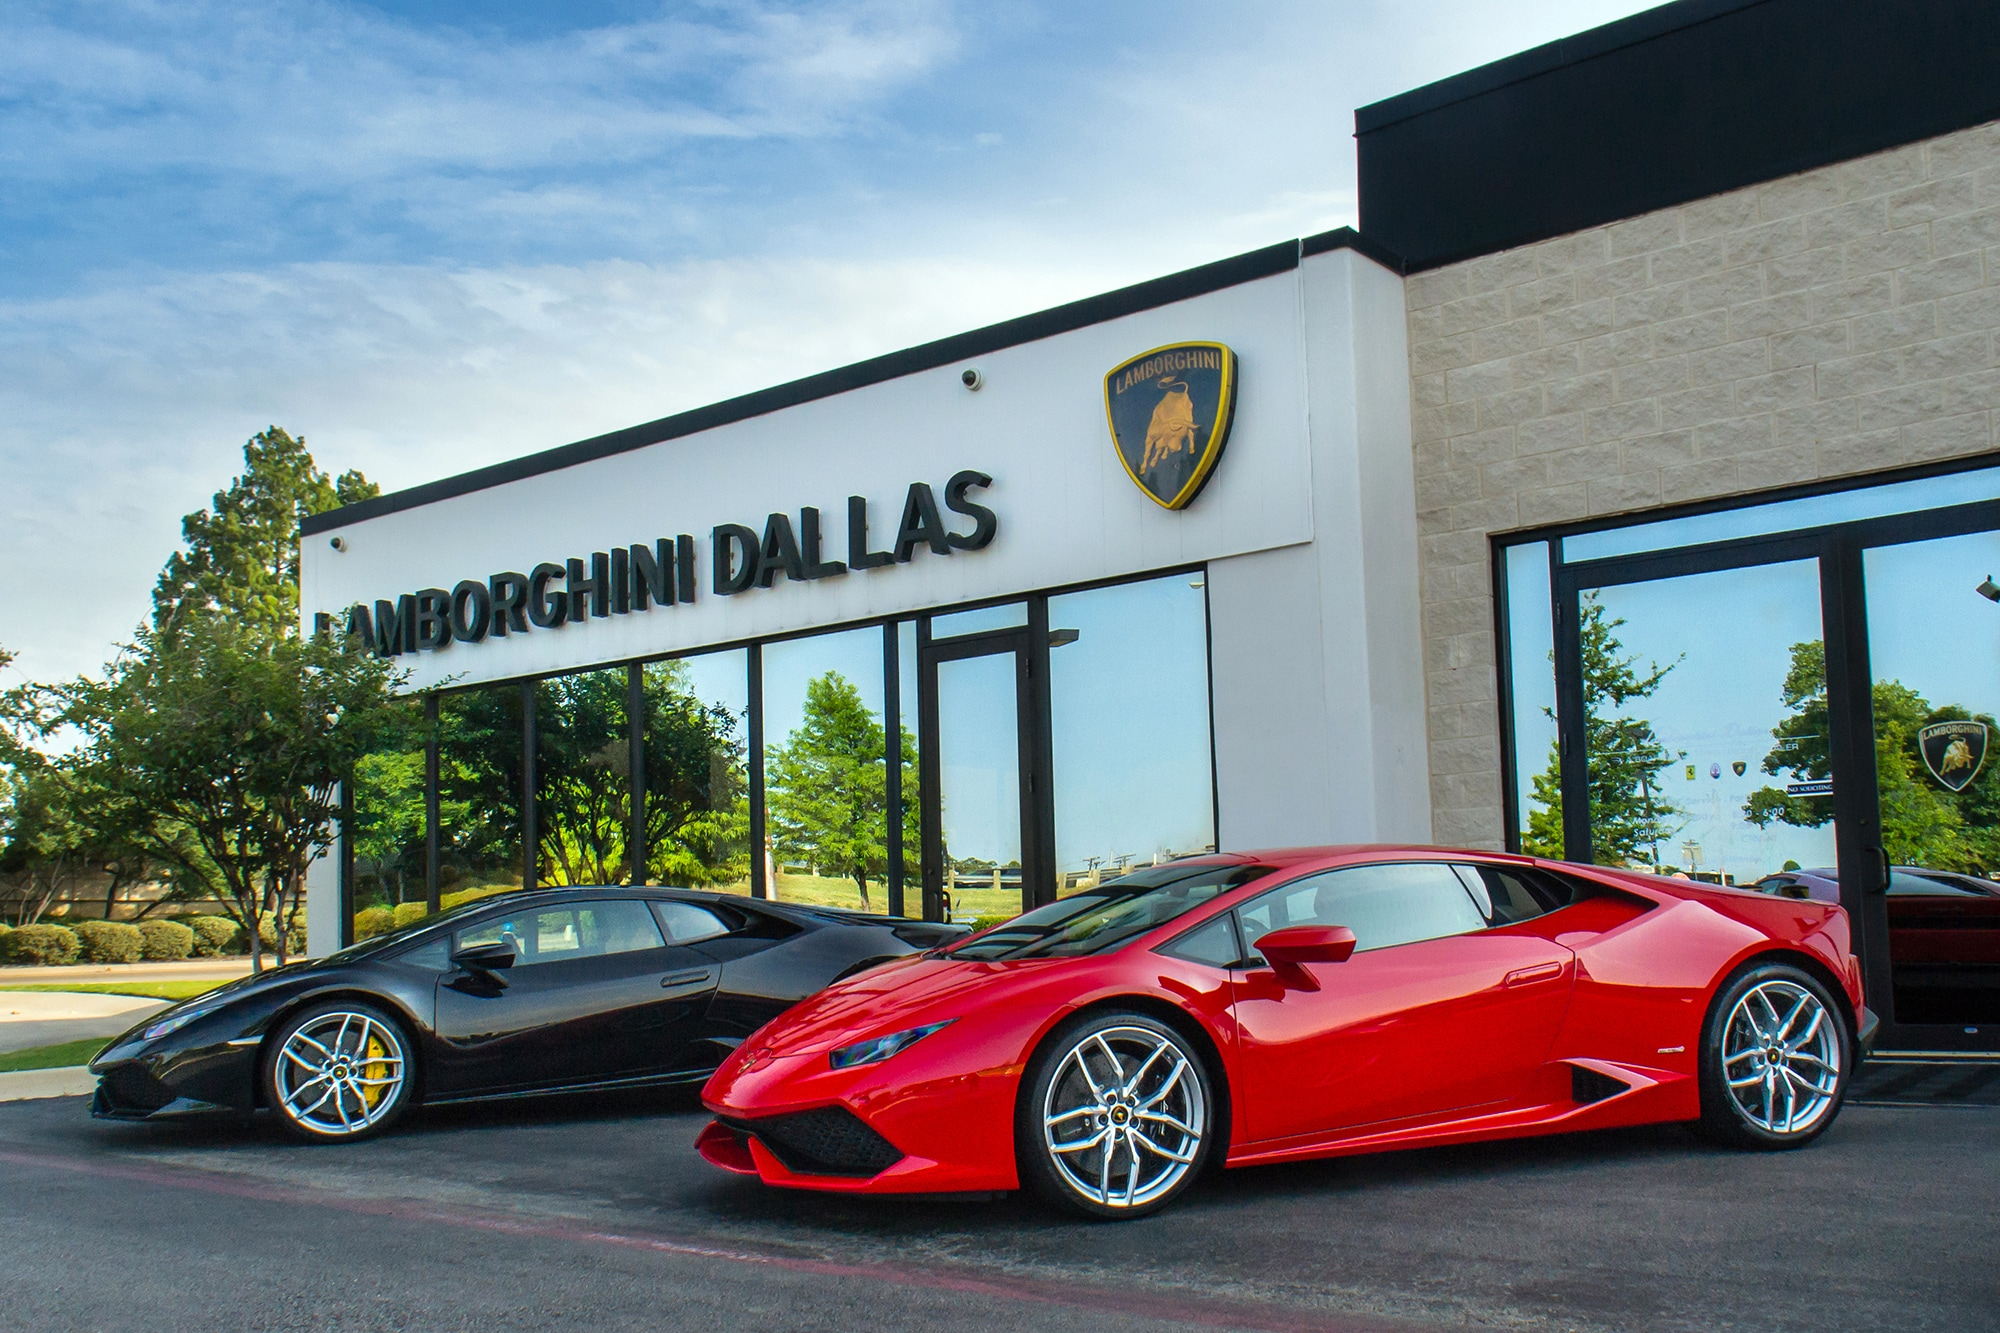 Permalink to Lamborghini Dealership Texas